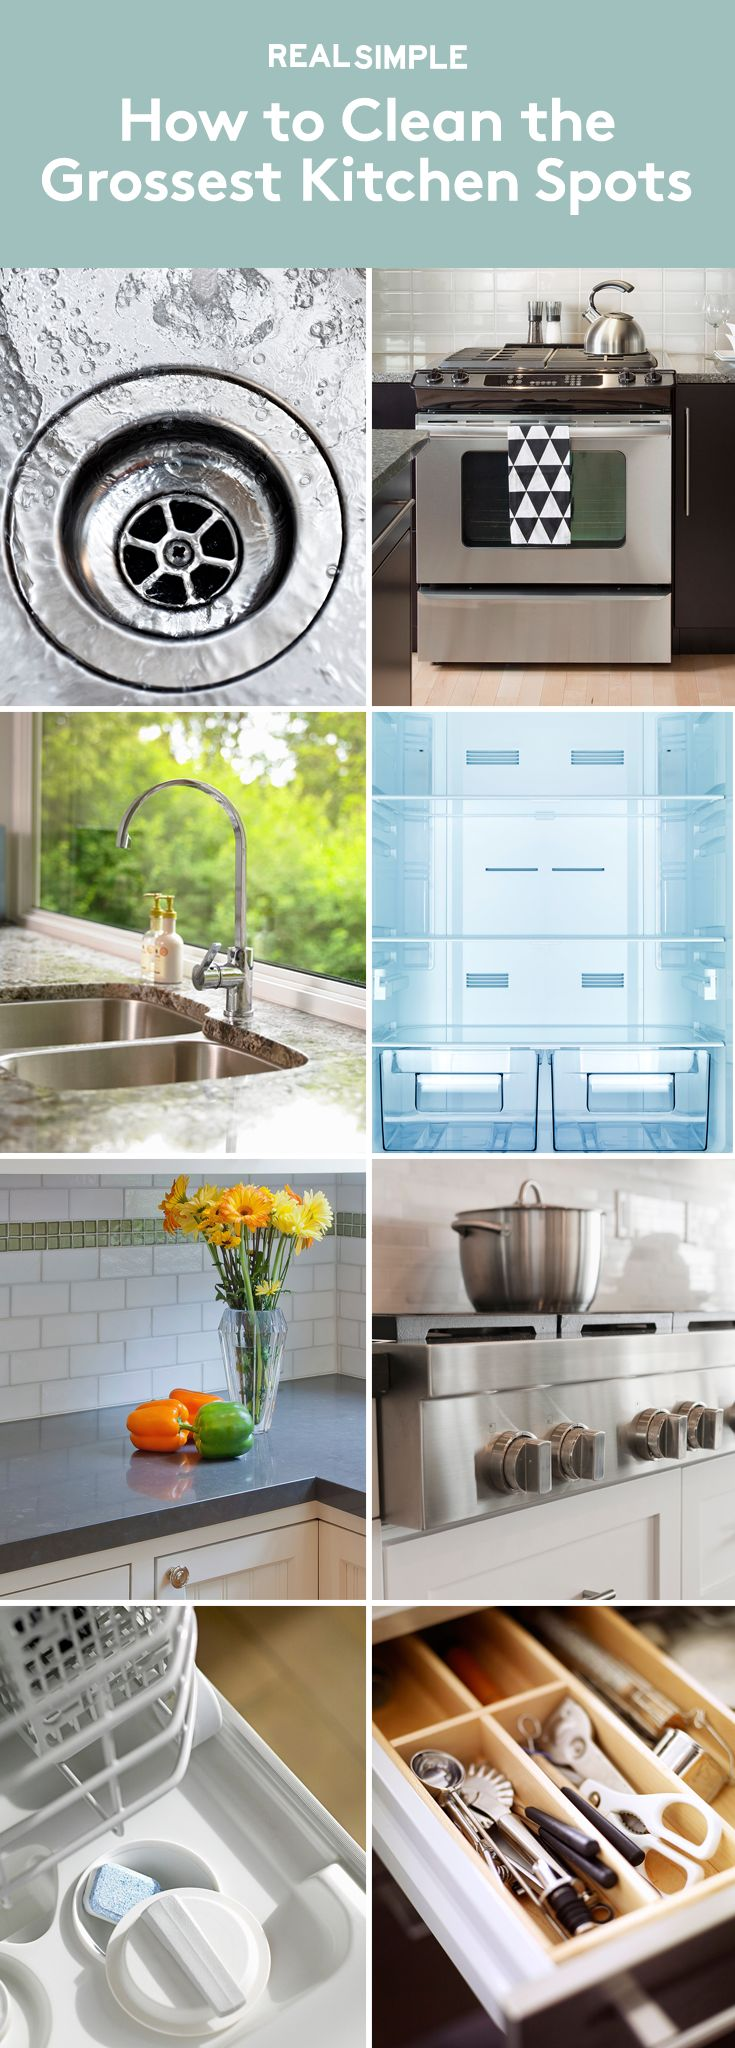 Best 10+ Clean stove grates ideas on Pinterest | Cleaning burners ...